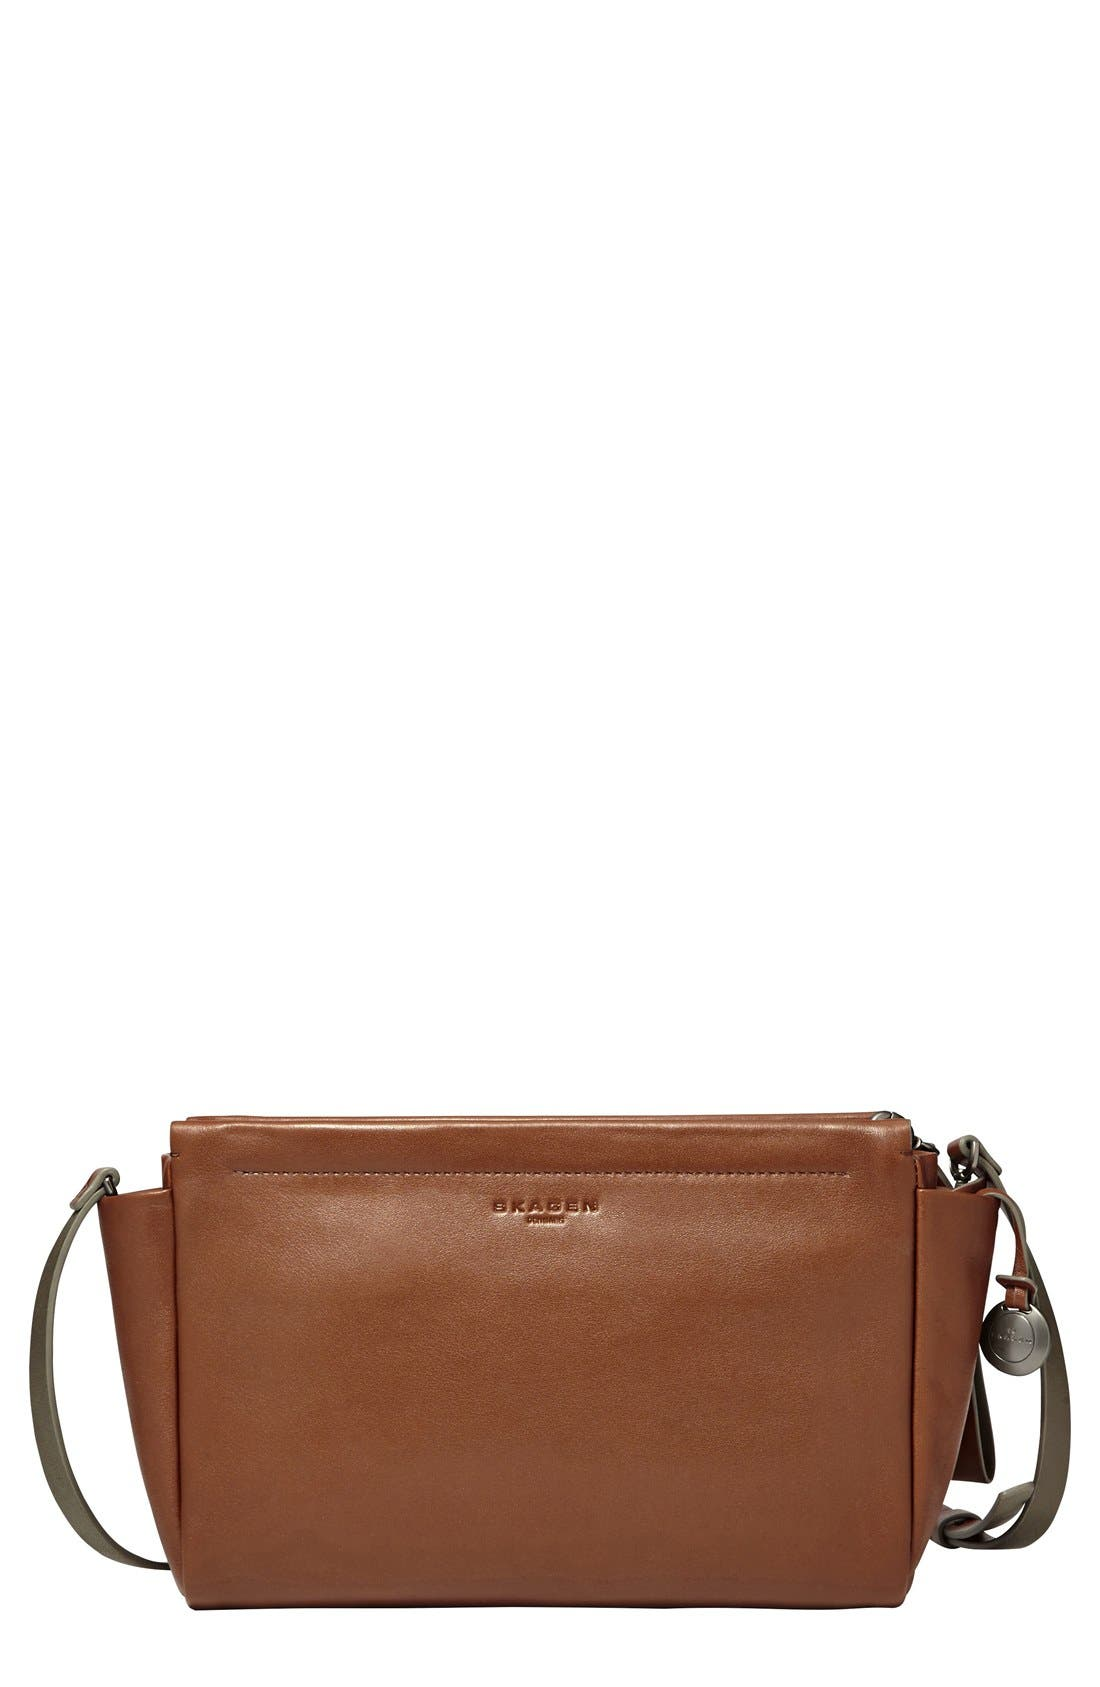 Alternate Image 2  - Skagen 'Dorte' Convertible Crossbody Bag